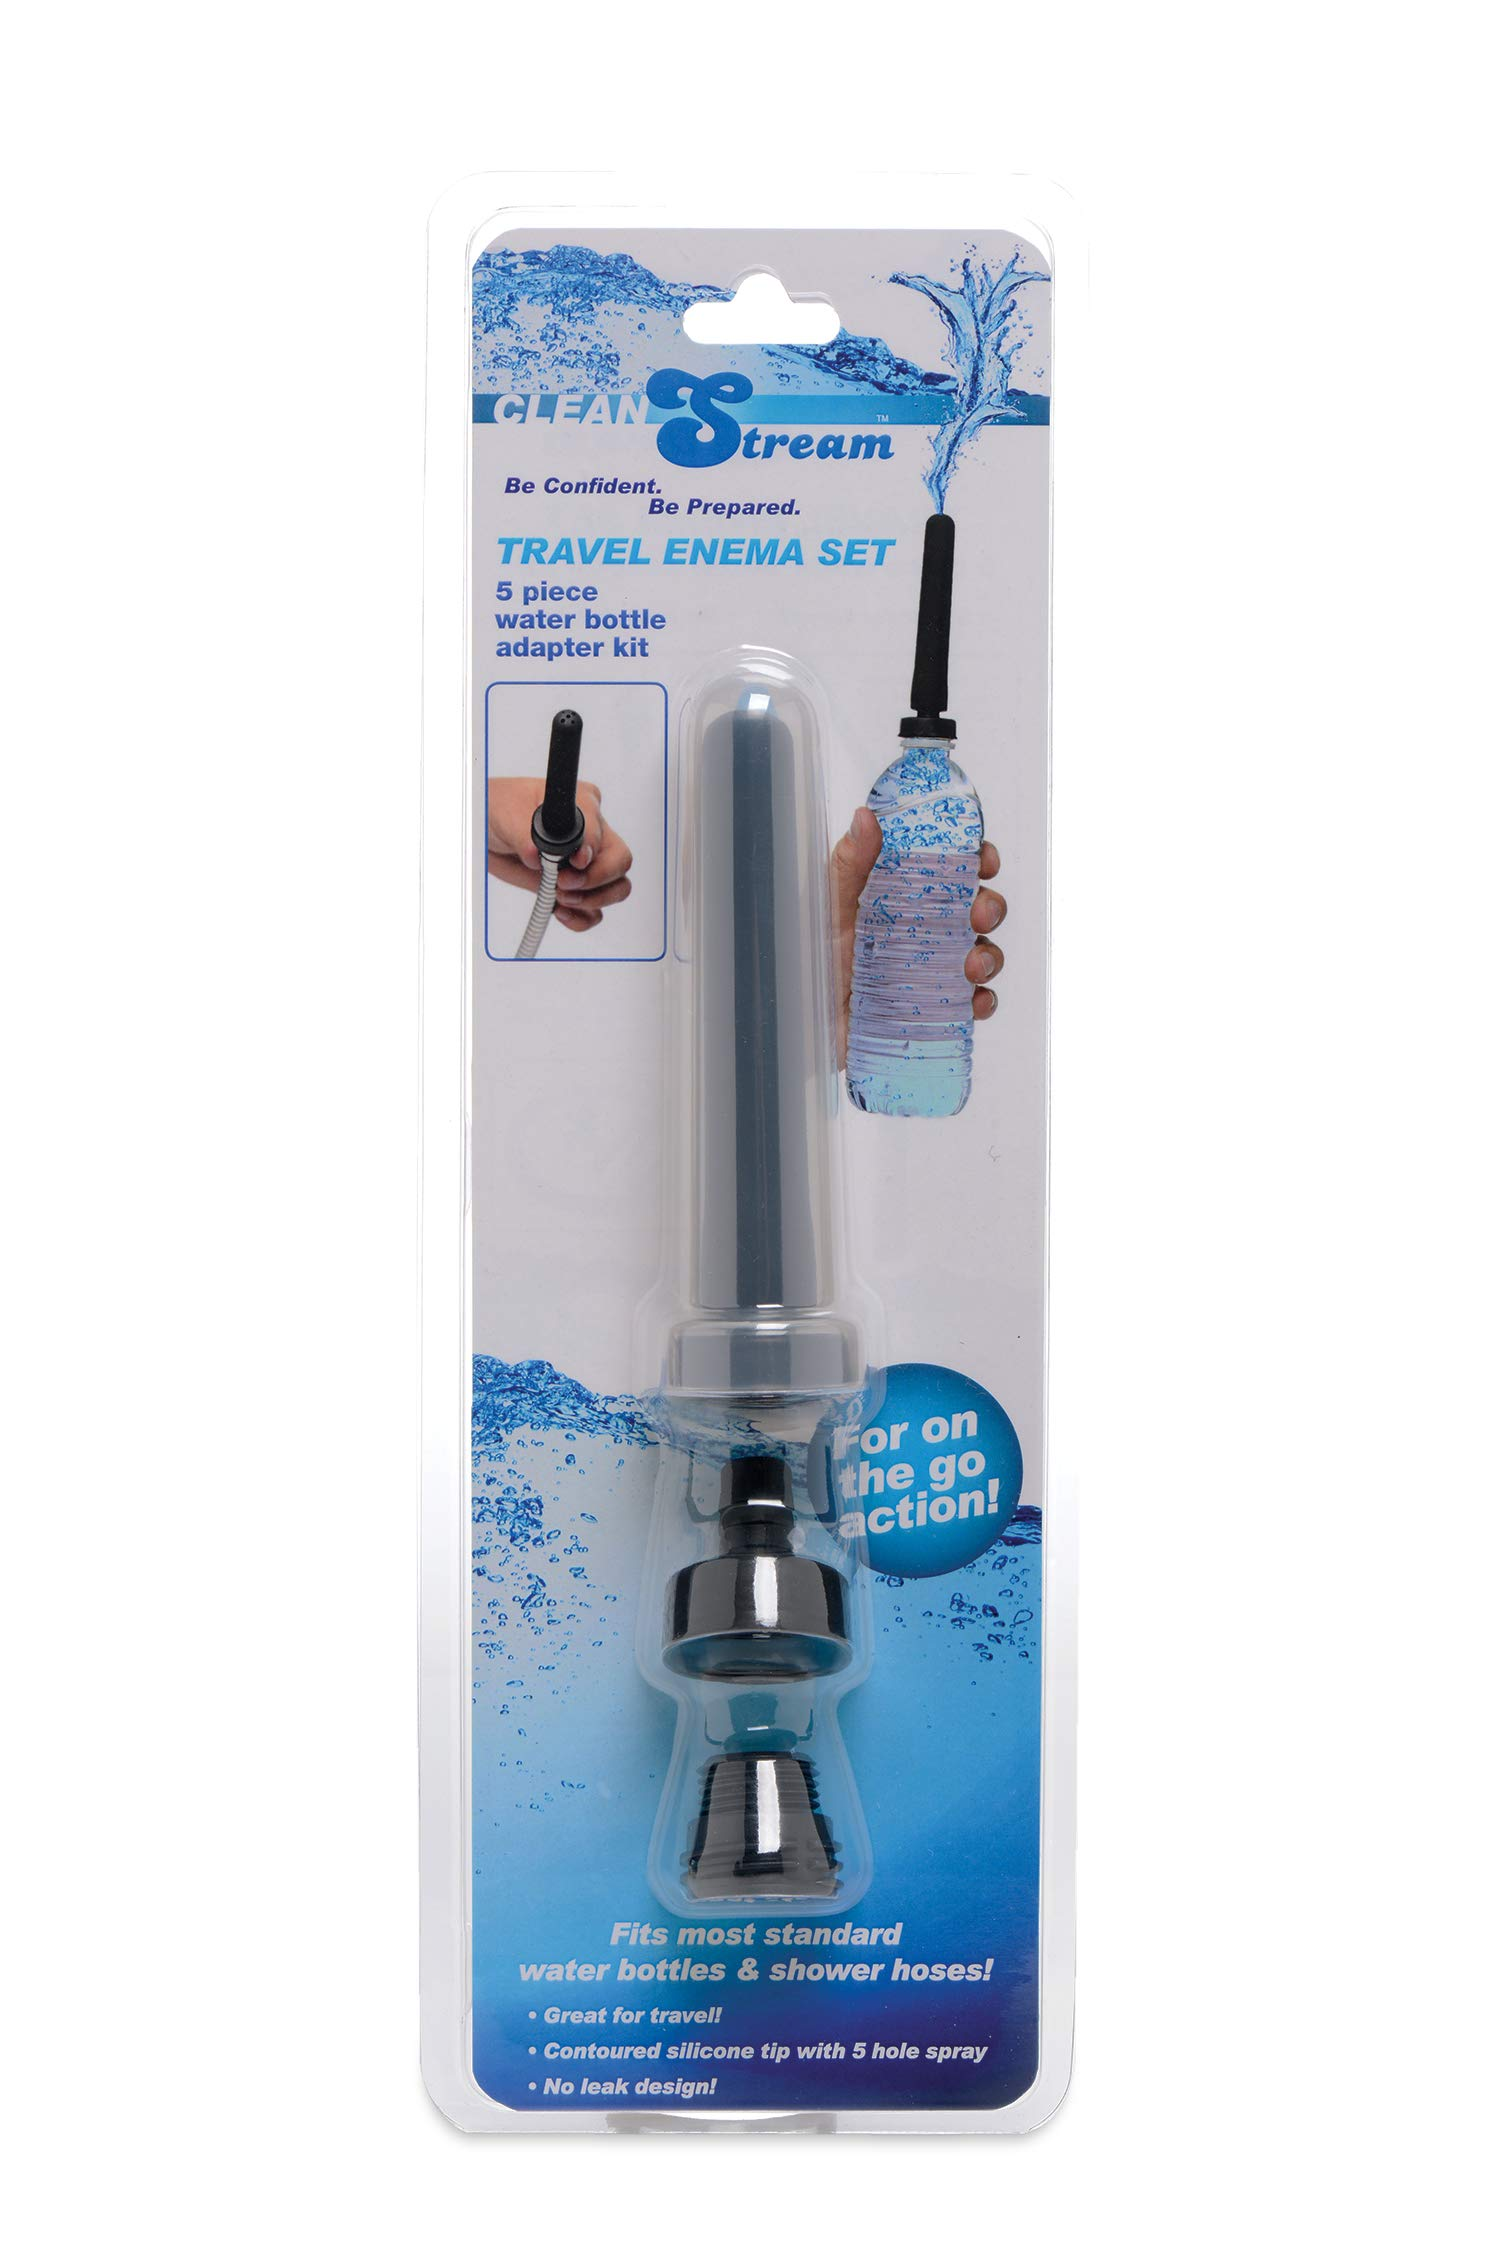 Cleanstream Travel Enema Water Bottle Adapter Set